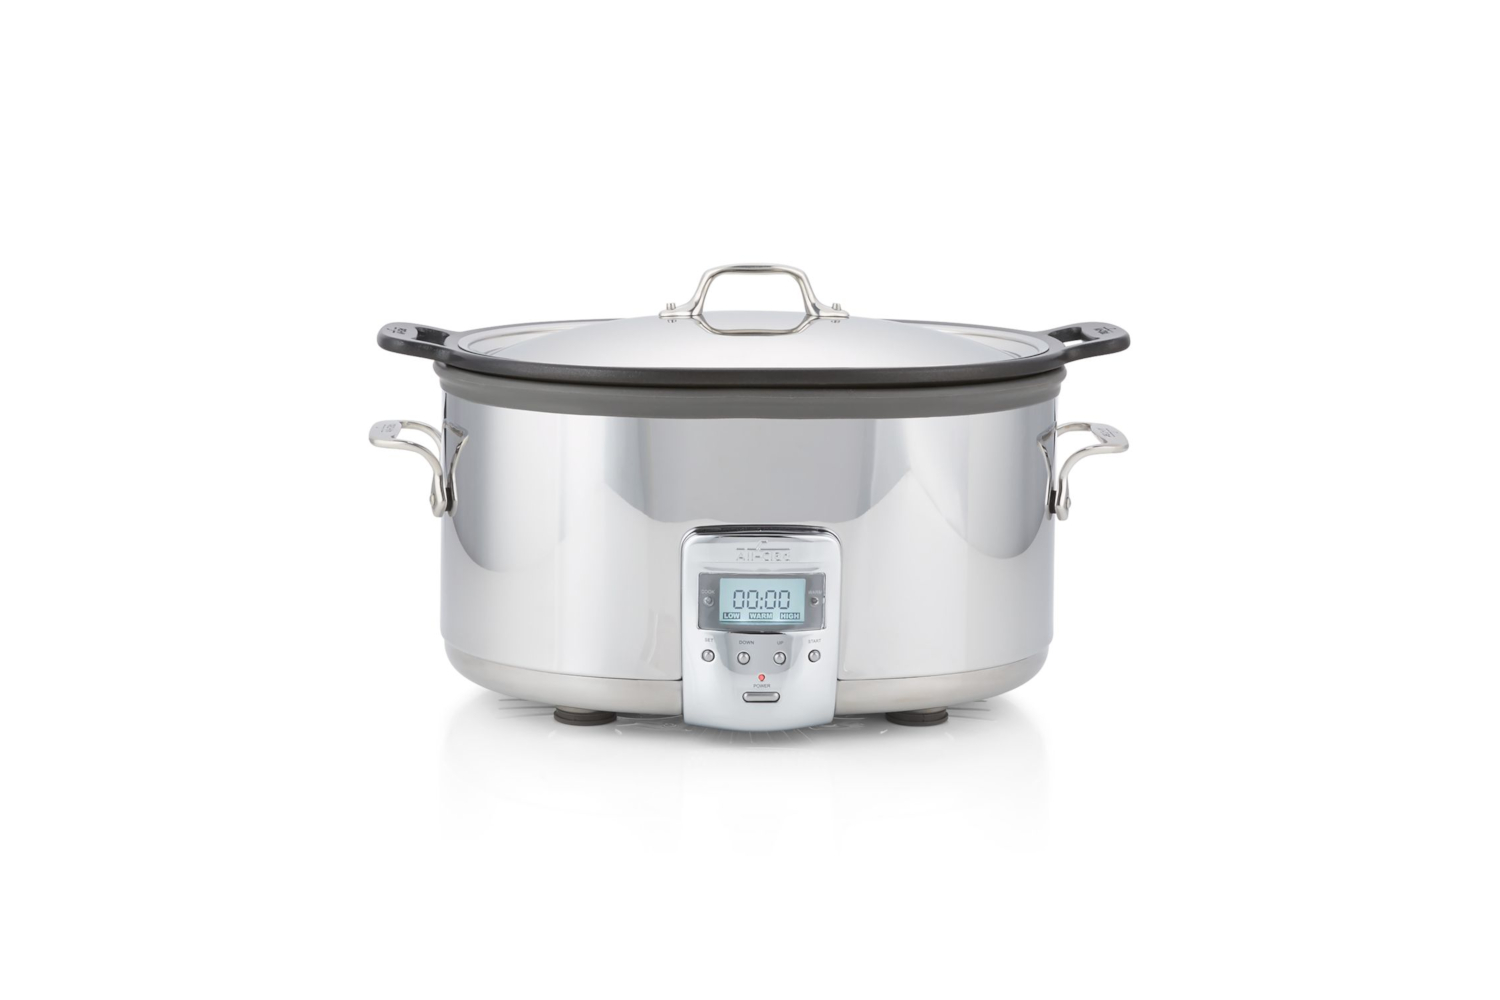 All-Clad 7 qt. Electric Slow Cooker w/Aluminum Insert